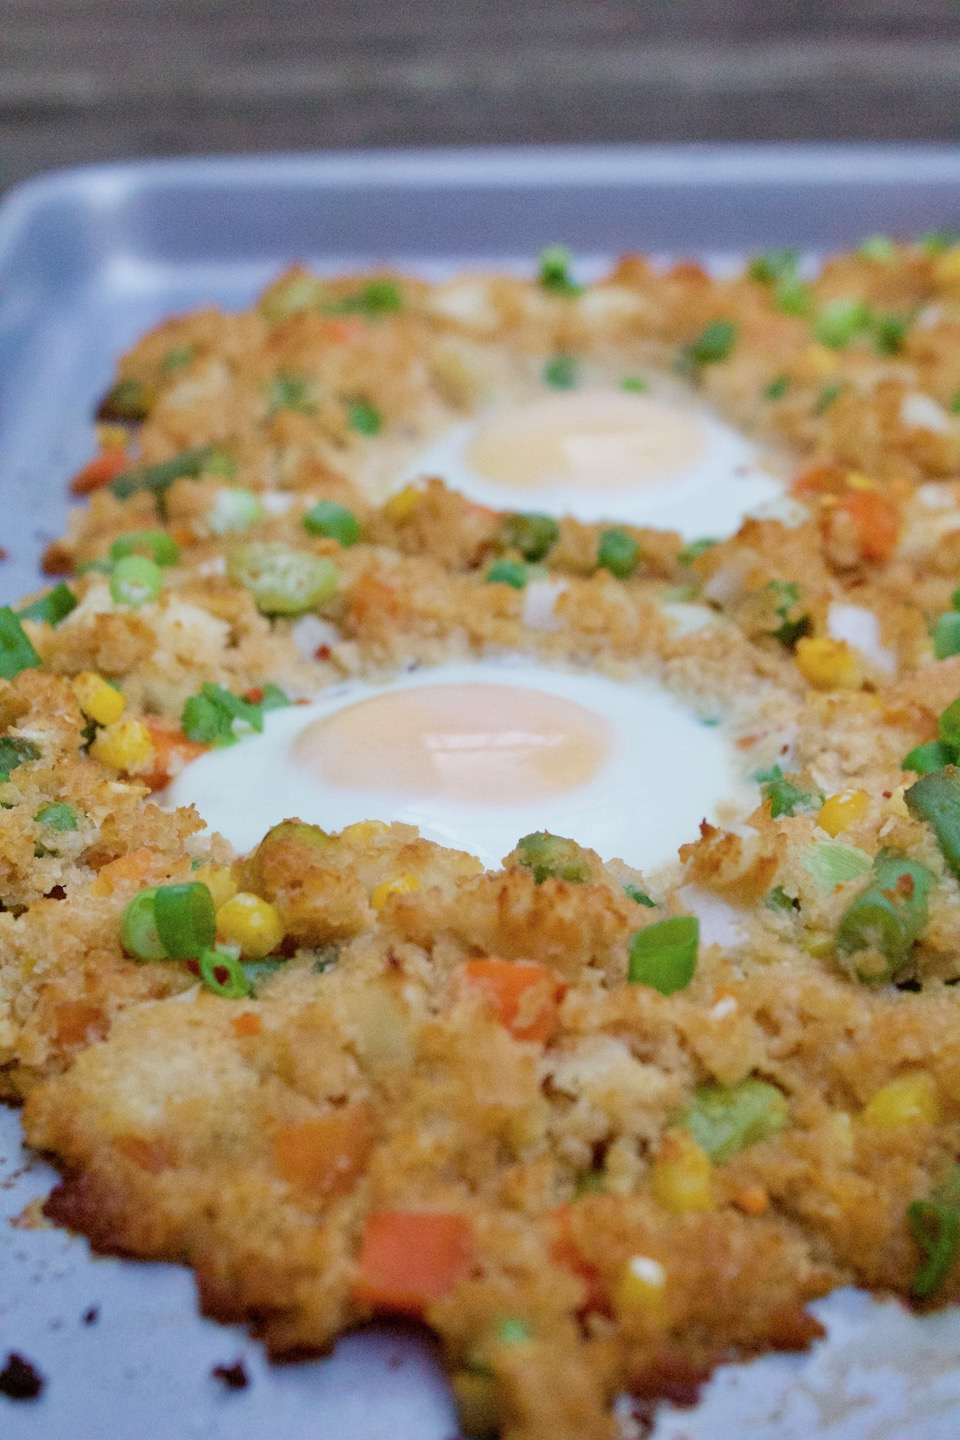 A low-carb and gluten free cauliflower fried rice recipe that's thrown on a sheet pan and baked in the oven. Only 7 ingredients, and made in under 20 minutes!| @sinfulnutrition | #thereciperedux